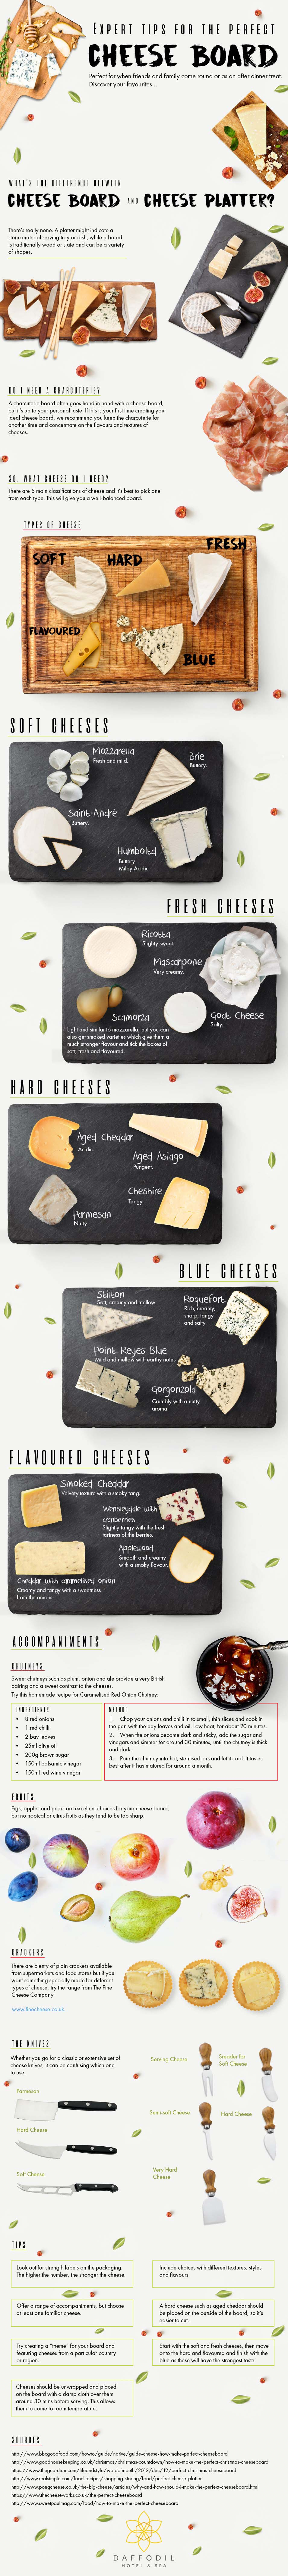 Expert Tips for the Perfect Cheese Board